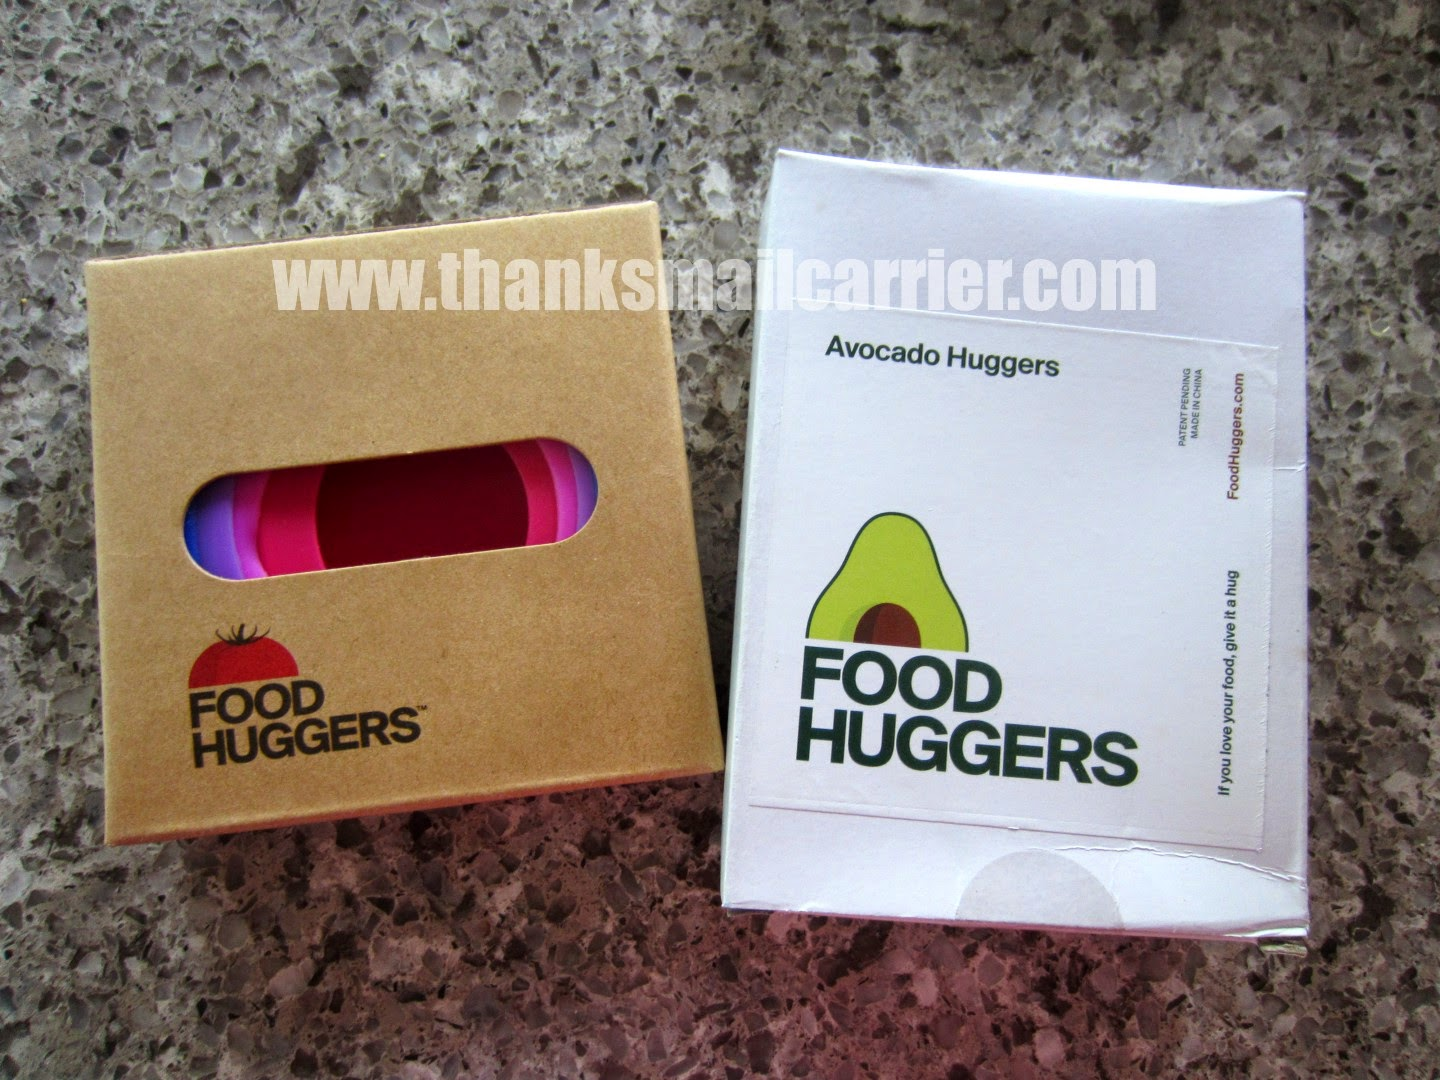 Example Coupons - Food Huggers Coupons as Below: 17% off Food Huggers® Set of Five - Autumn Harvest; 15% off Food Huggers® Set of Five - Bright Berry; 17% off Food Huggers® Set of Five - Fresh Greens; Free shipping on ALL orders over $30; Up To 17% Off Selected Products; How to use a Food Huggers Special Offer? The steps of using a coupon code are shown below.